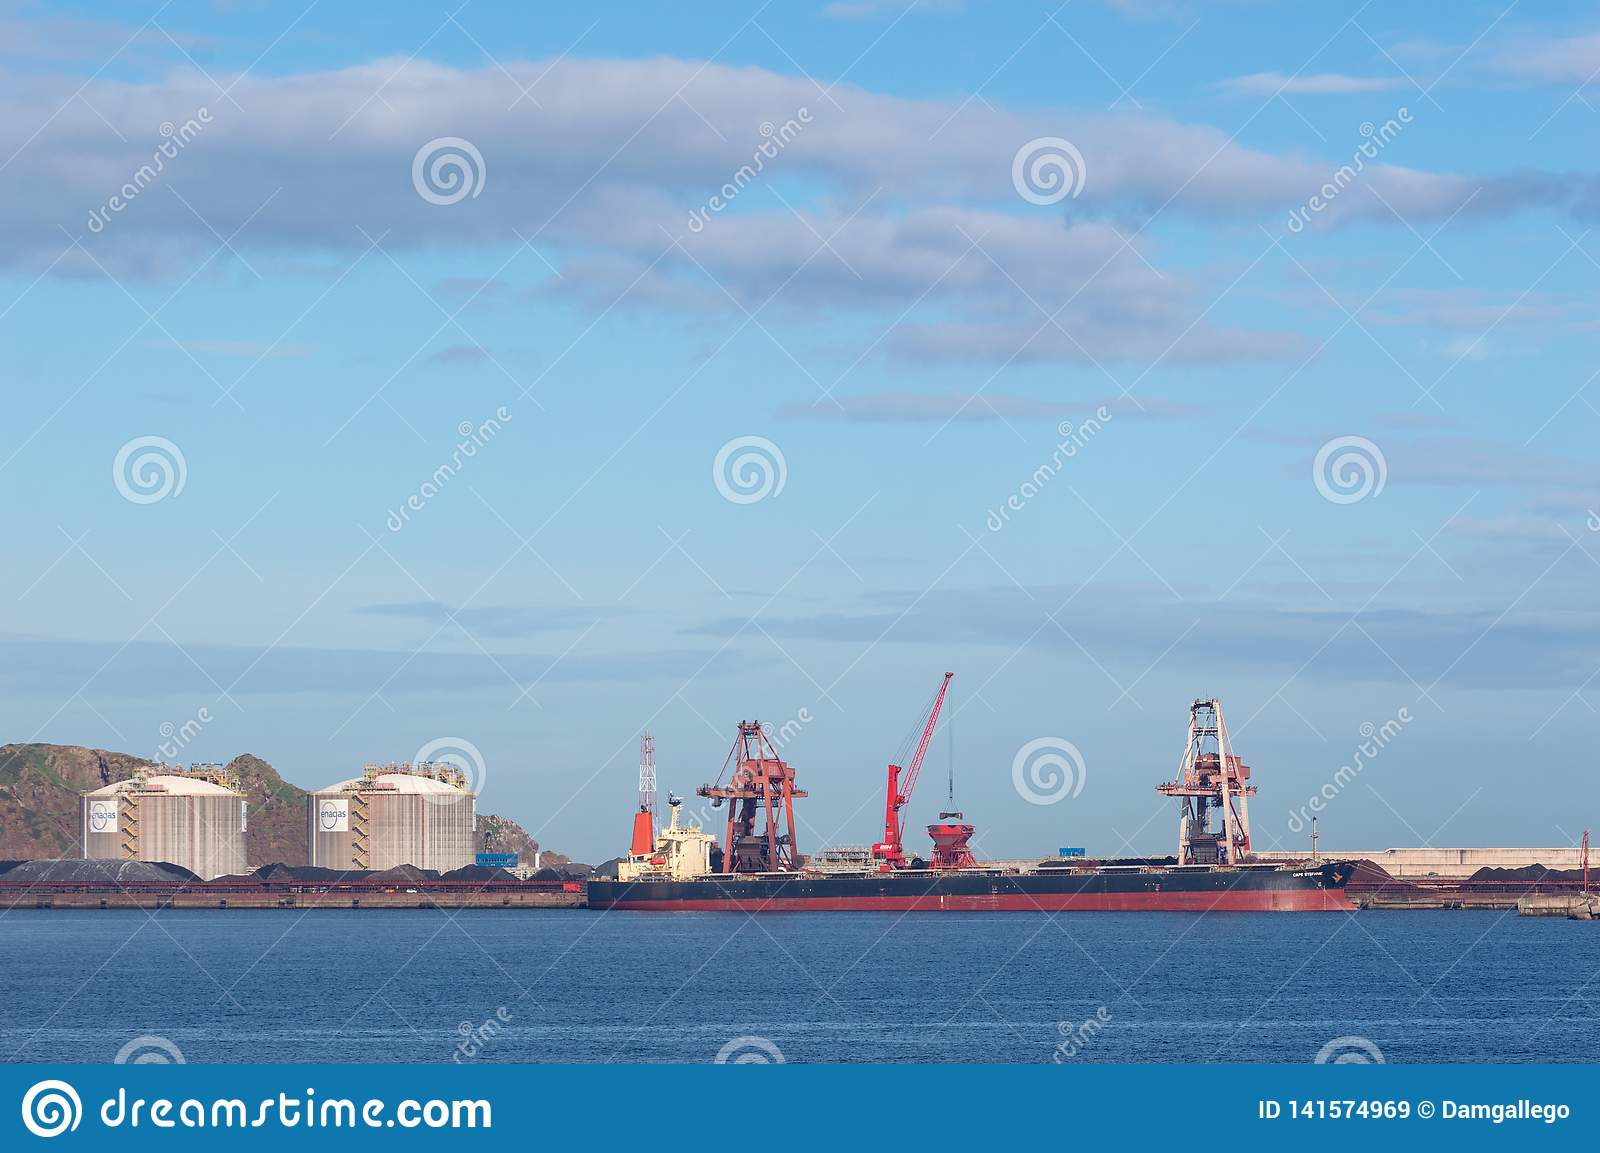 4a41eebe18143f Coal Cargo Ship Moored In Port With Lifting Cargo Cranes